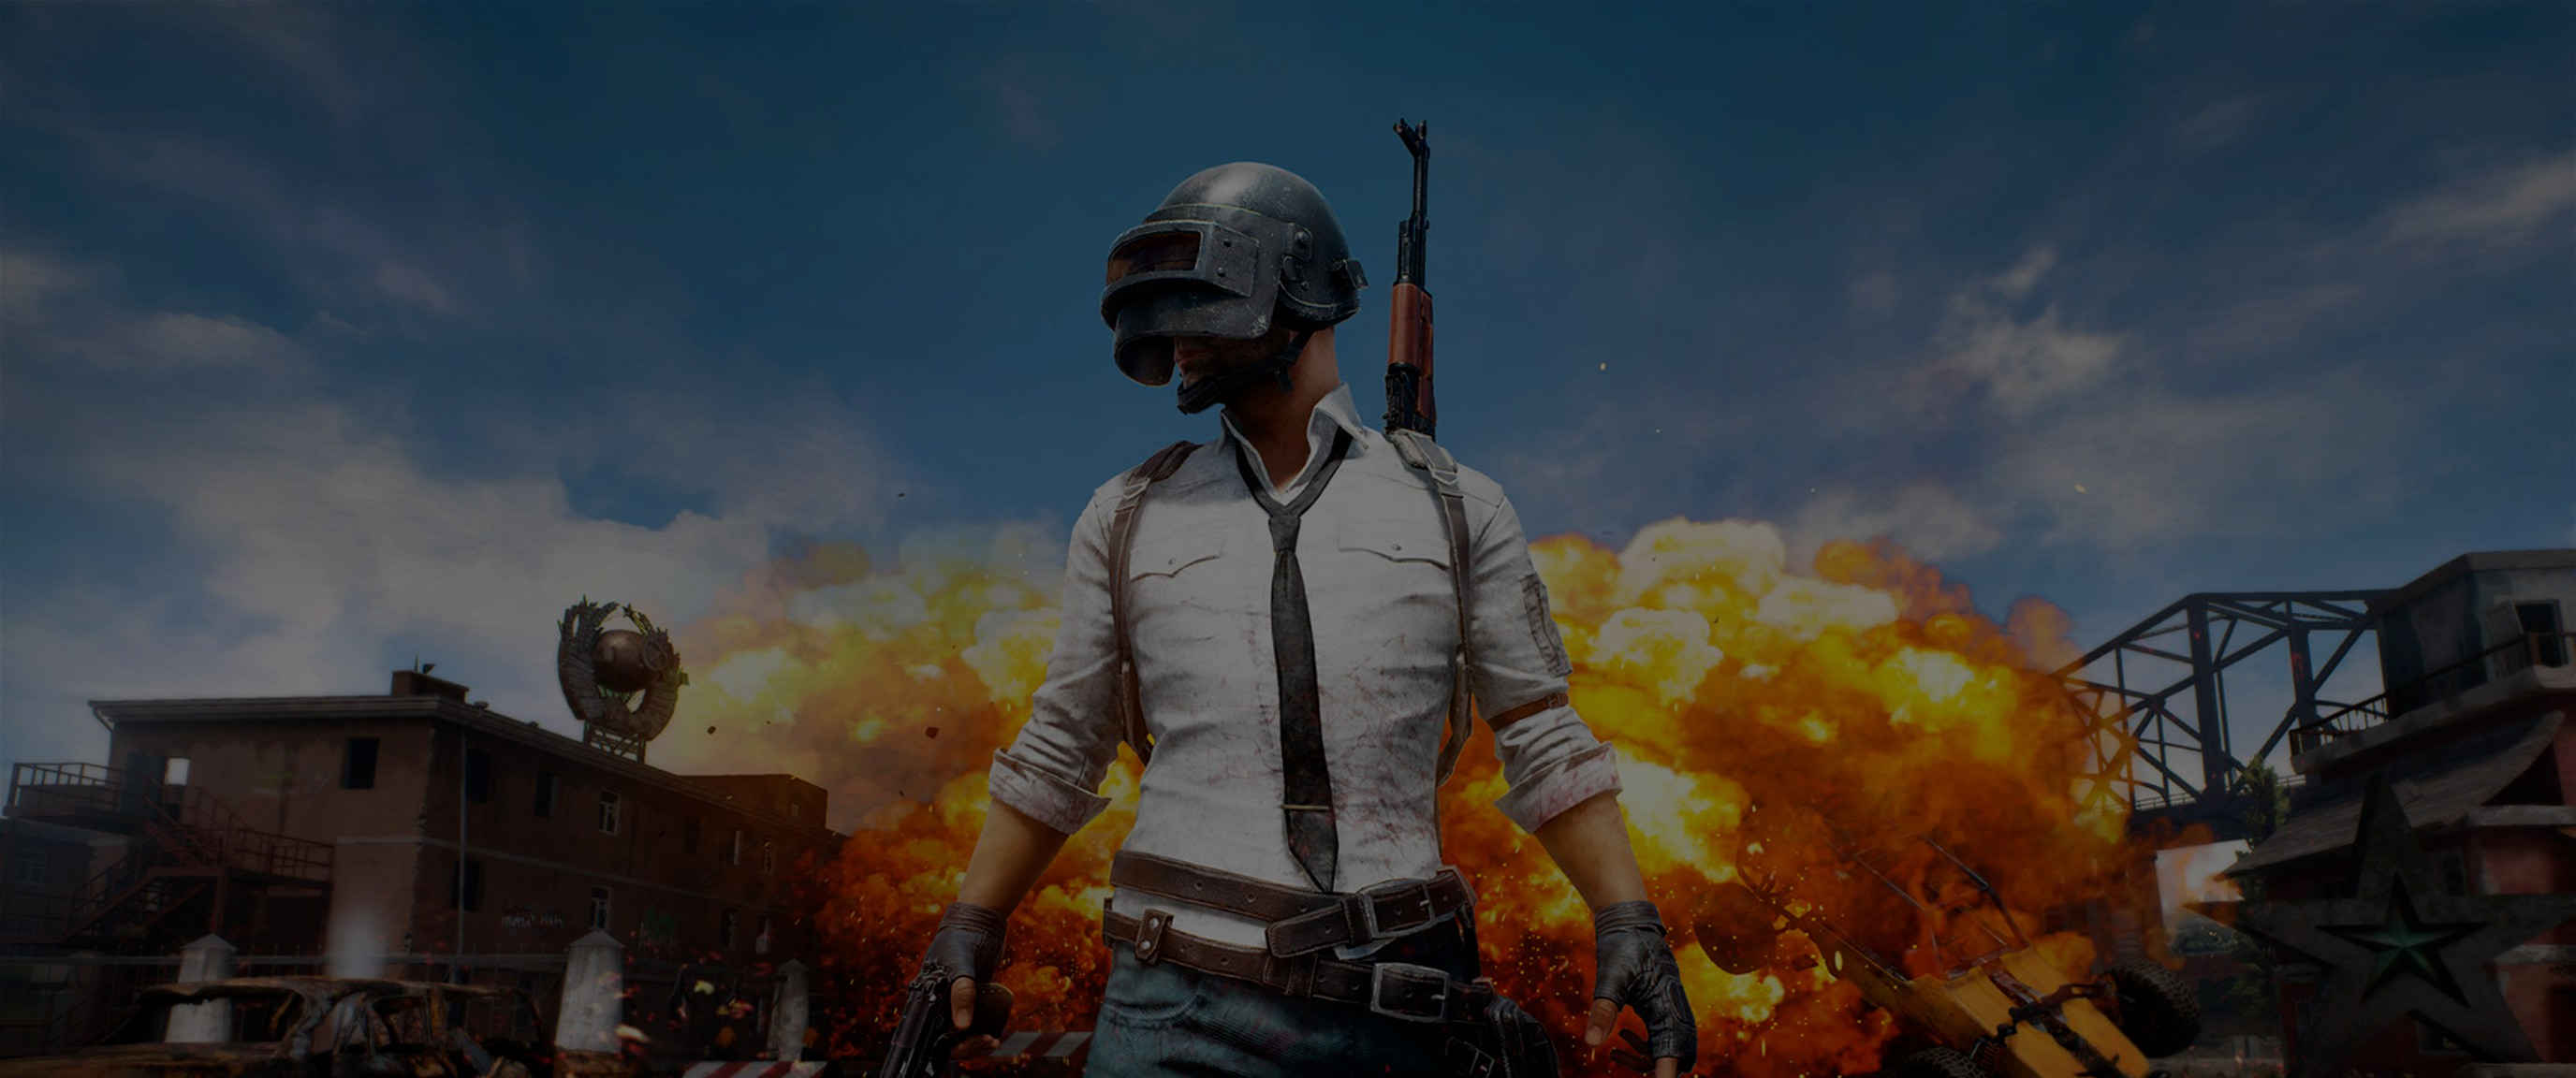 Pubg Wallpaper Creator: Steam Community :: Screenshot :: PUBG Background